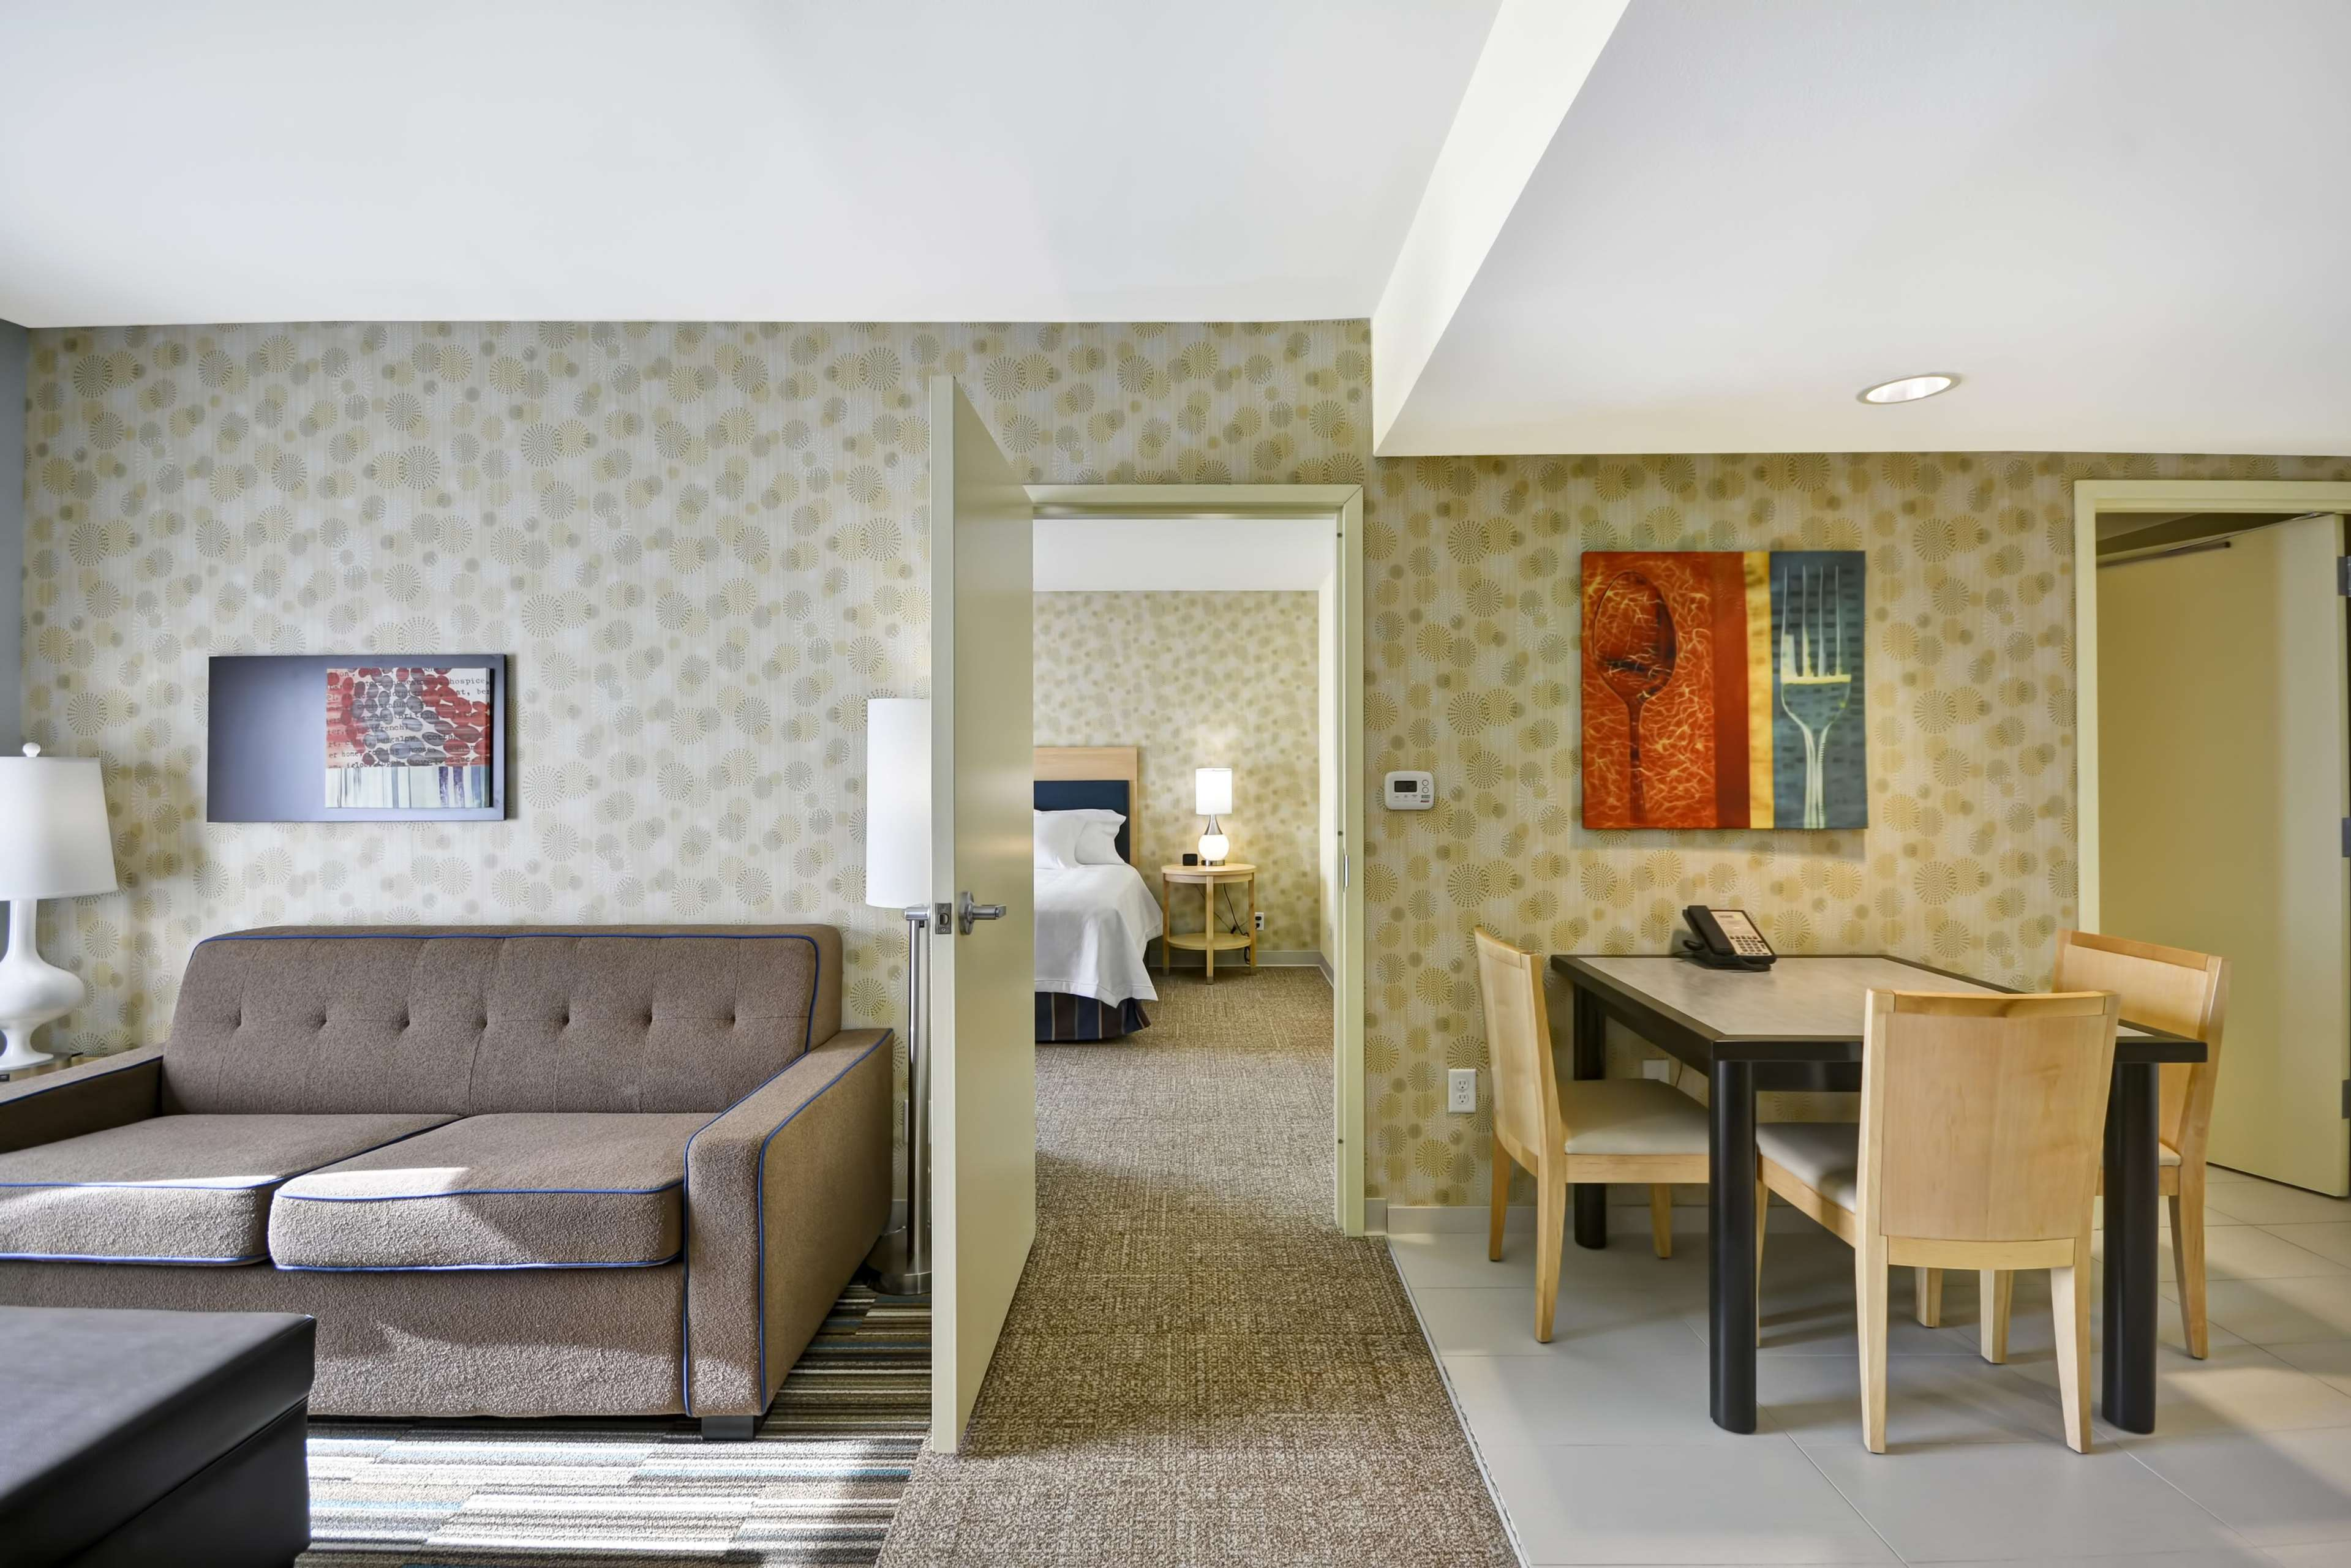 Home2 Suites by Hilton Oswego image 17